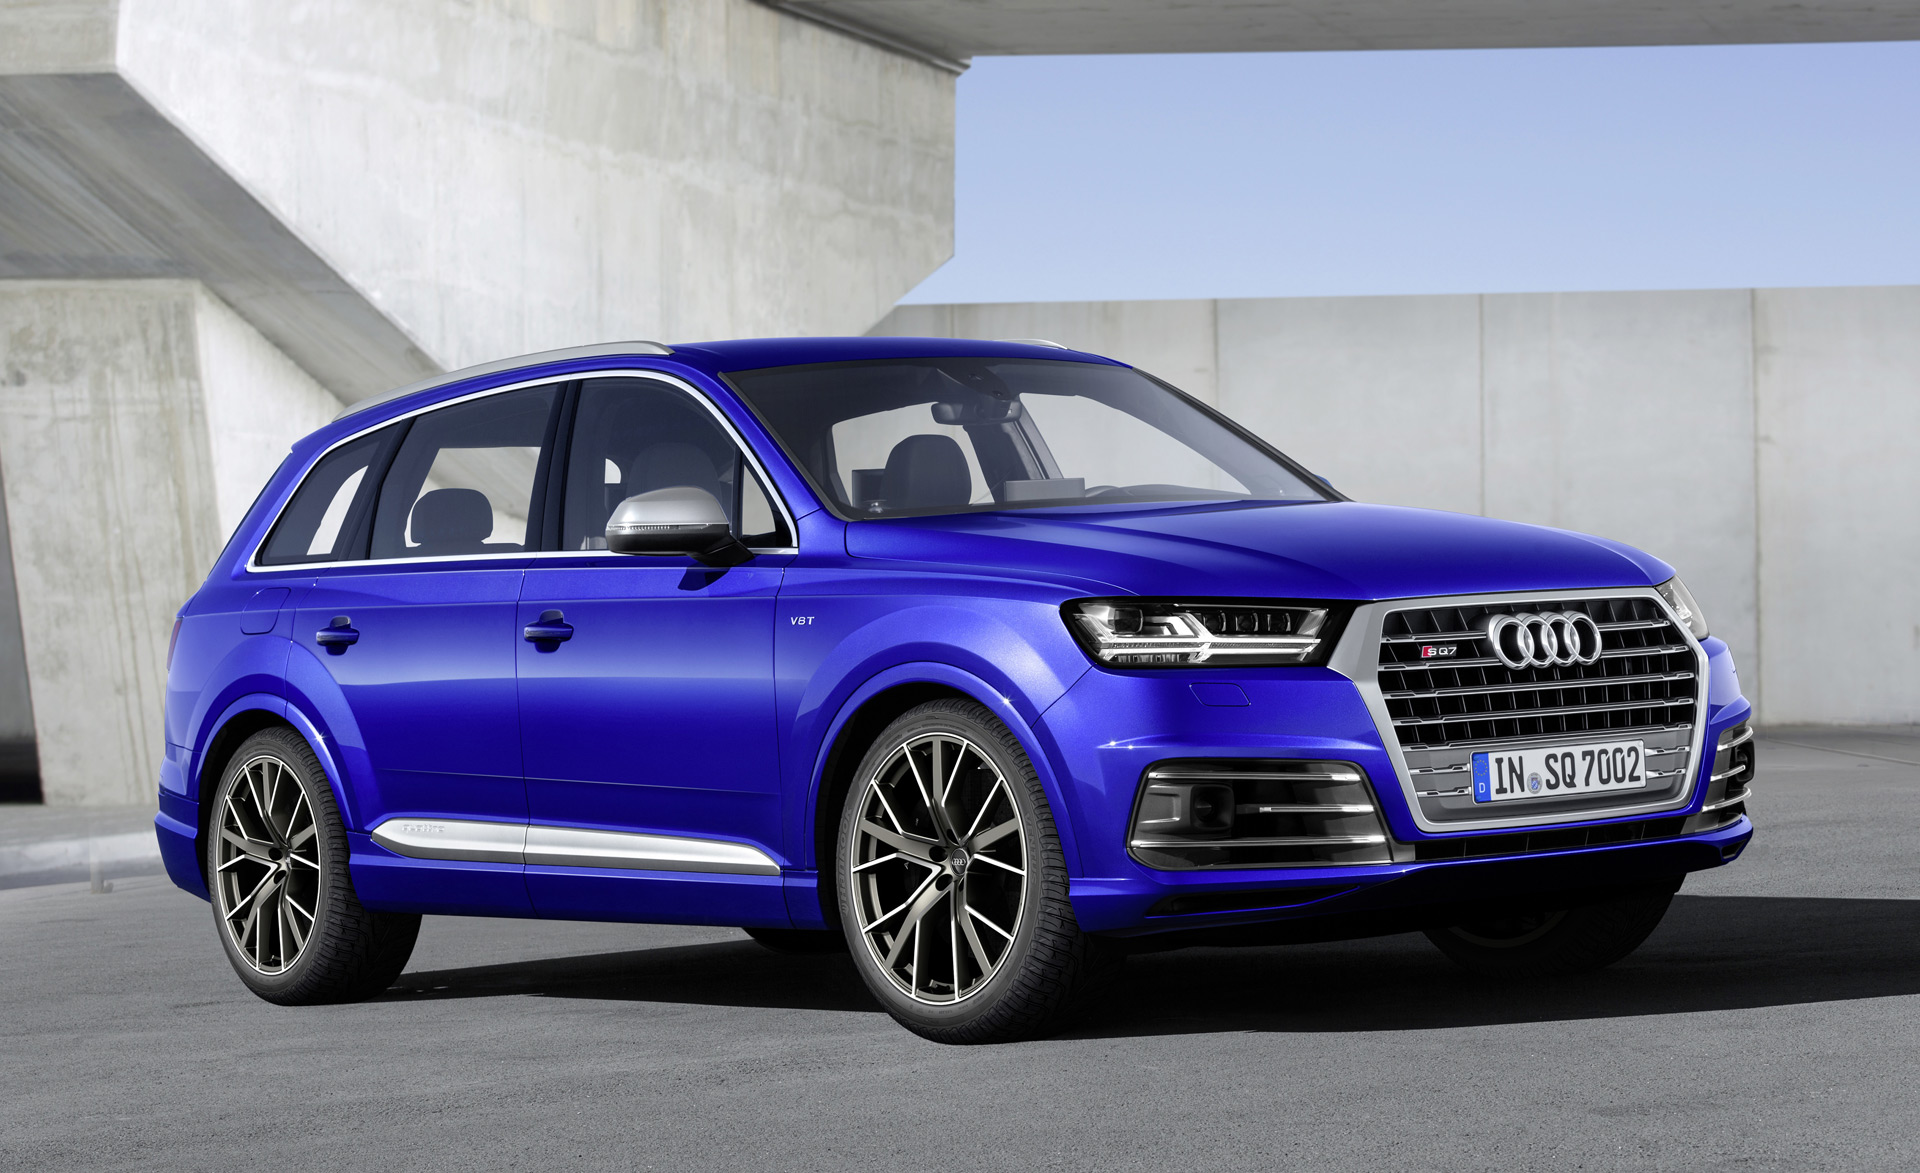 Audi Sq7 Tdi Debuts With Electric Compressor 663 Lb Ft Of